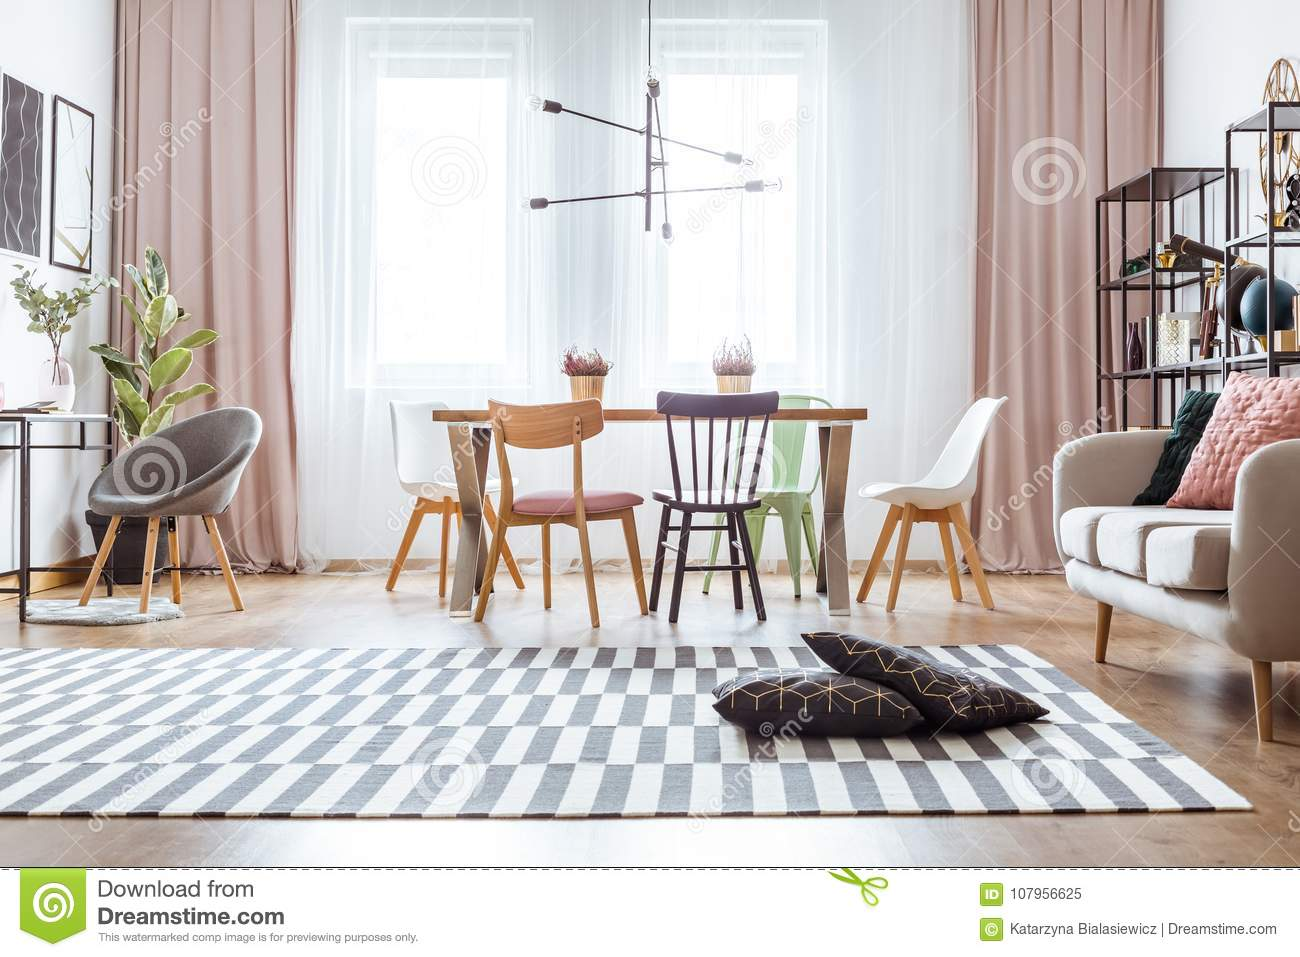 Black Pillows On Patterned Carpet And Pink Drapes In Cozy Living Room Interior With Chairs At Dining Table Near Sofa